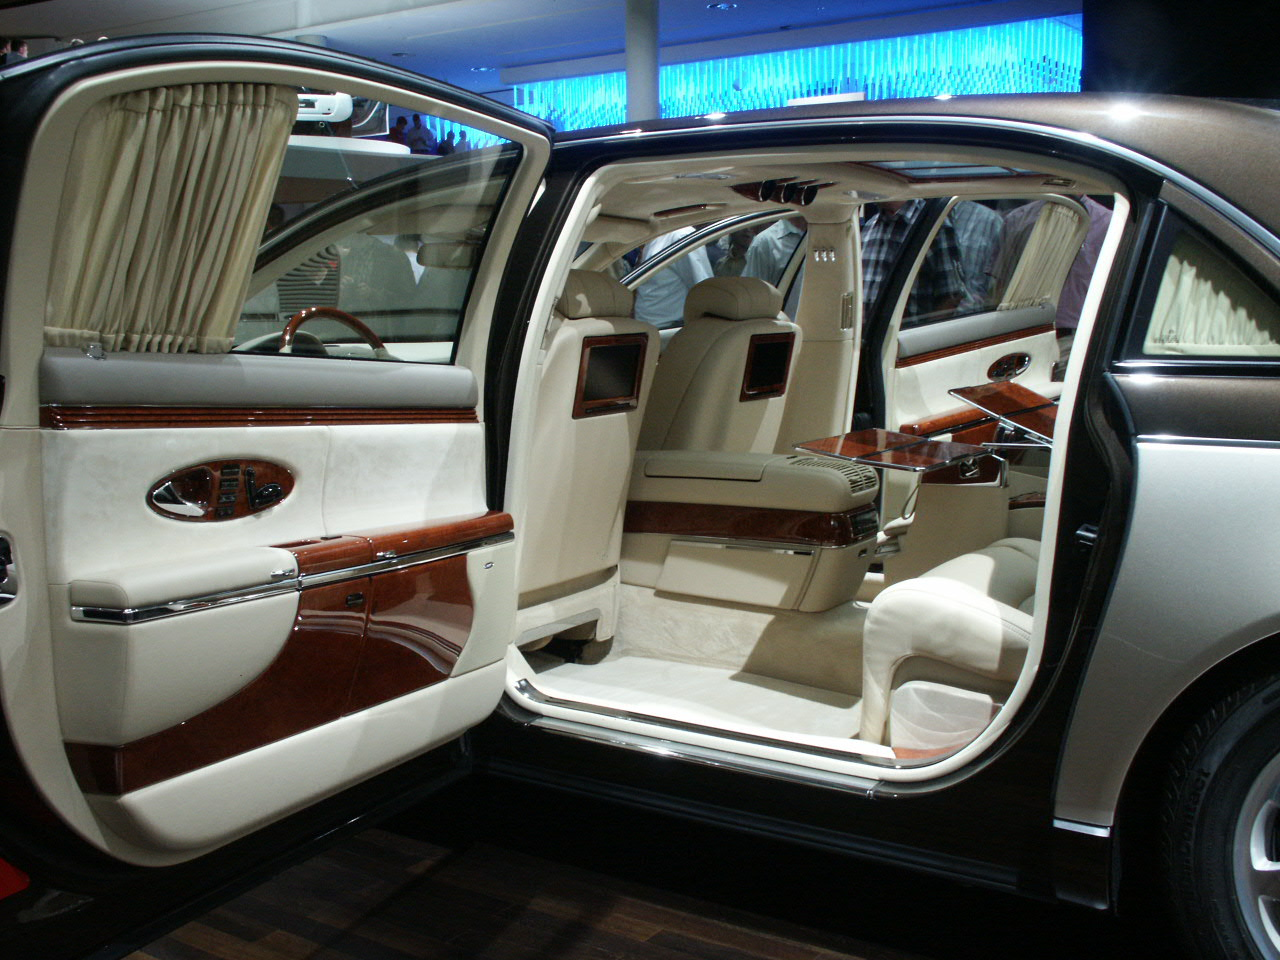 fast cars maybach car the 8 million dollar phots. Black Bedroom Furniture Sets. Home Design Ideas